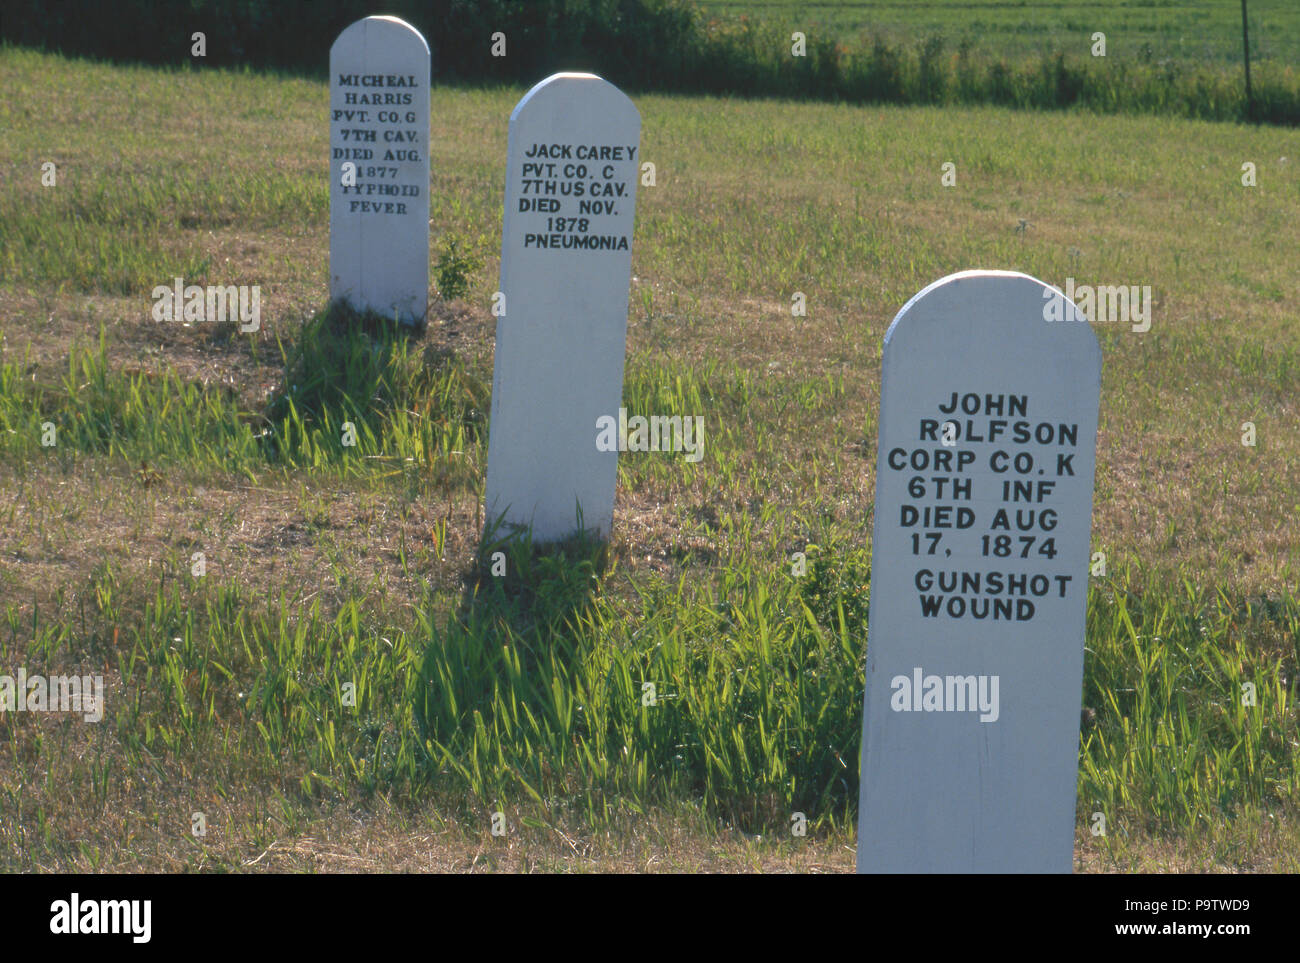 Graves in the post cemetery, Fort McKeen, renamed Fort Abraham Lincoln, Mandan, North Dakota, 1870s. Photograph - Stock Image